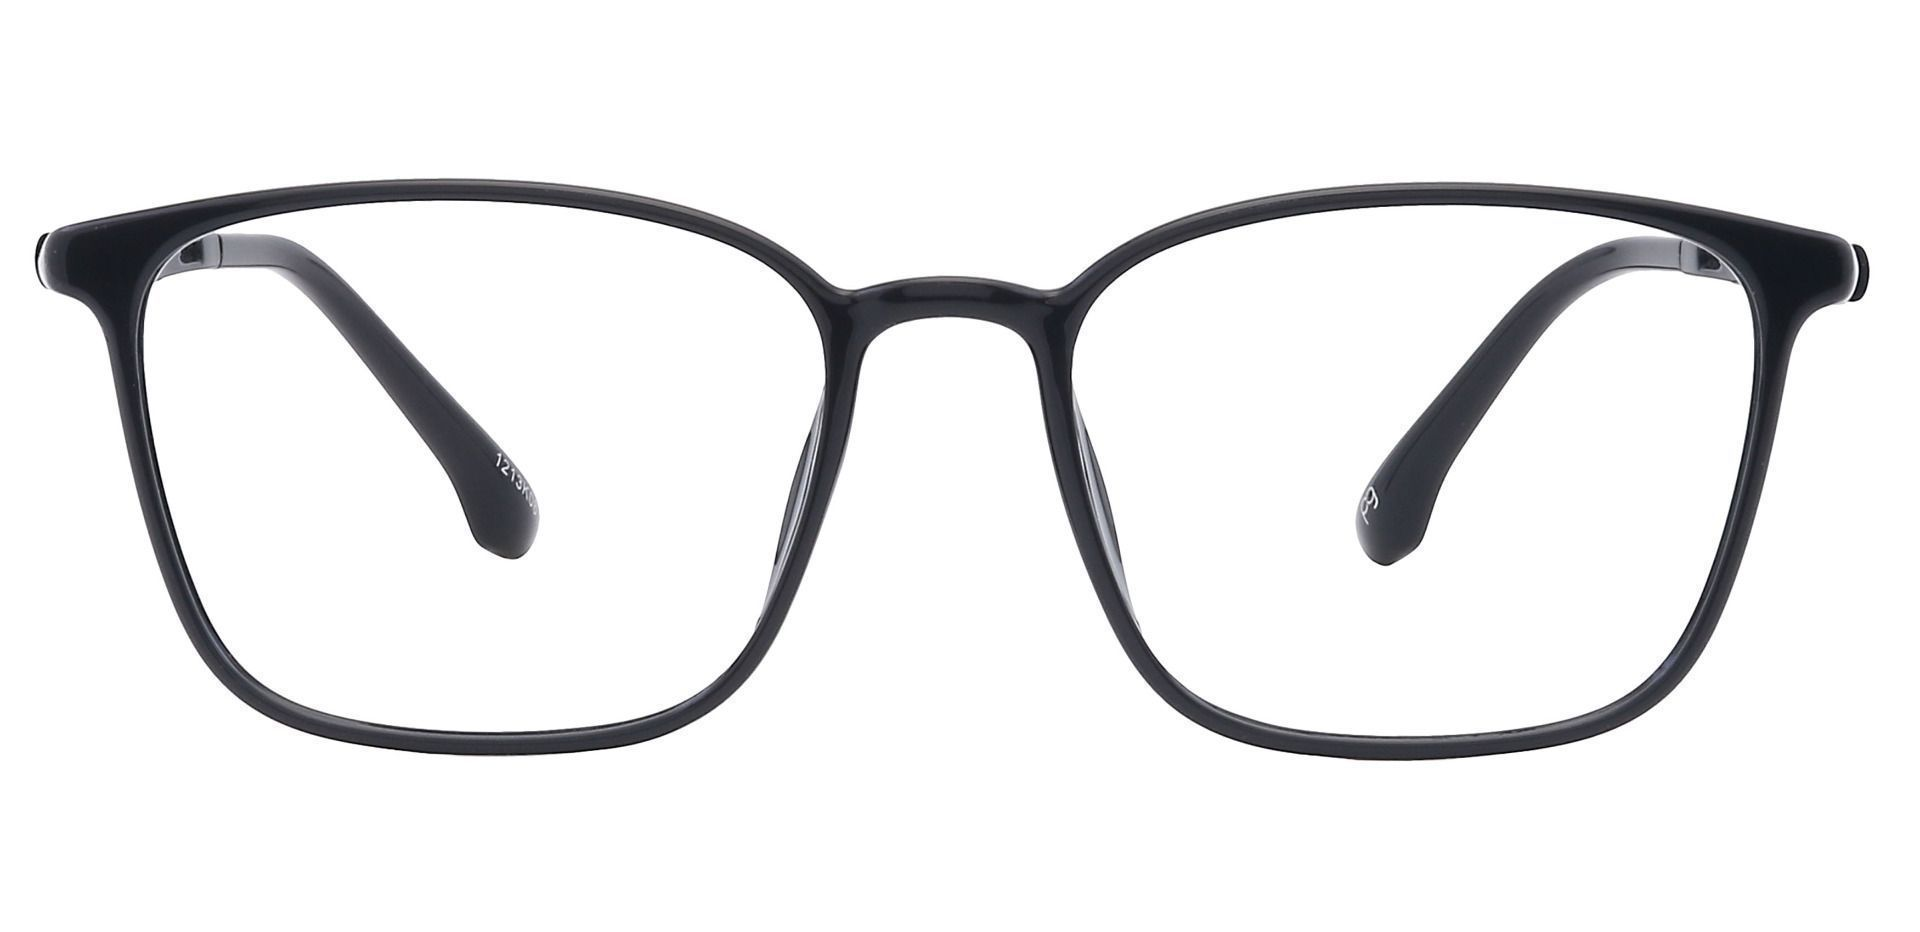 Darby Oval Prescription Glasses - Black